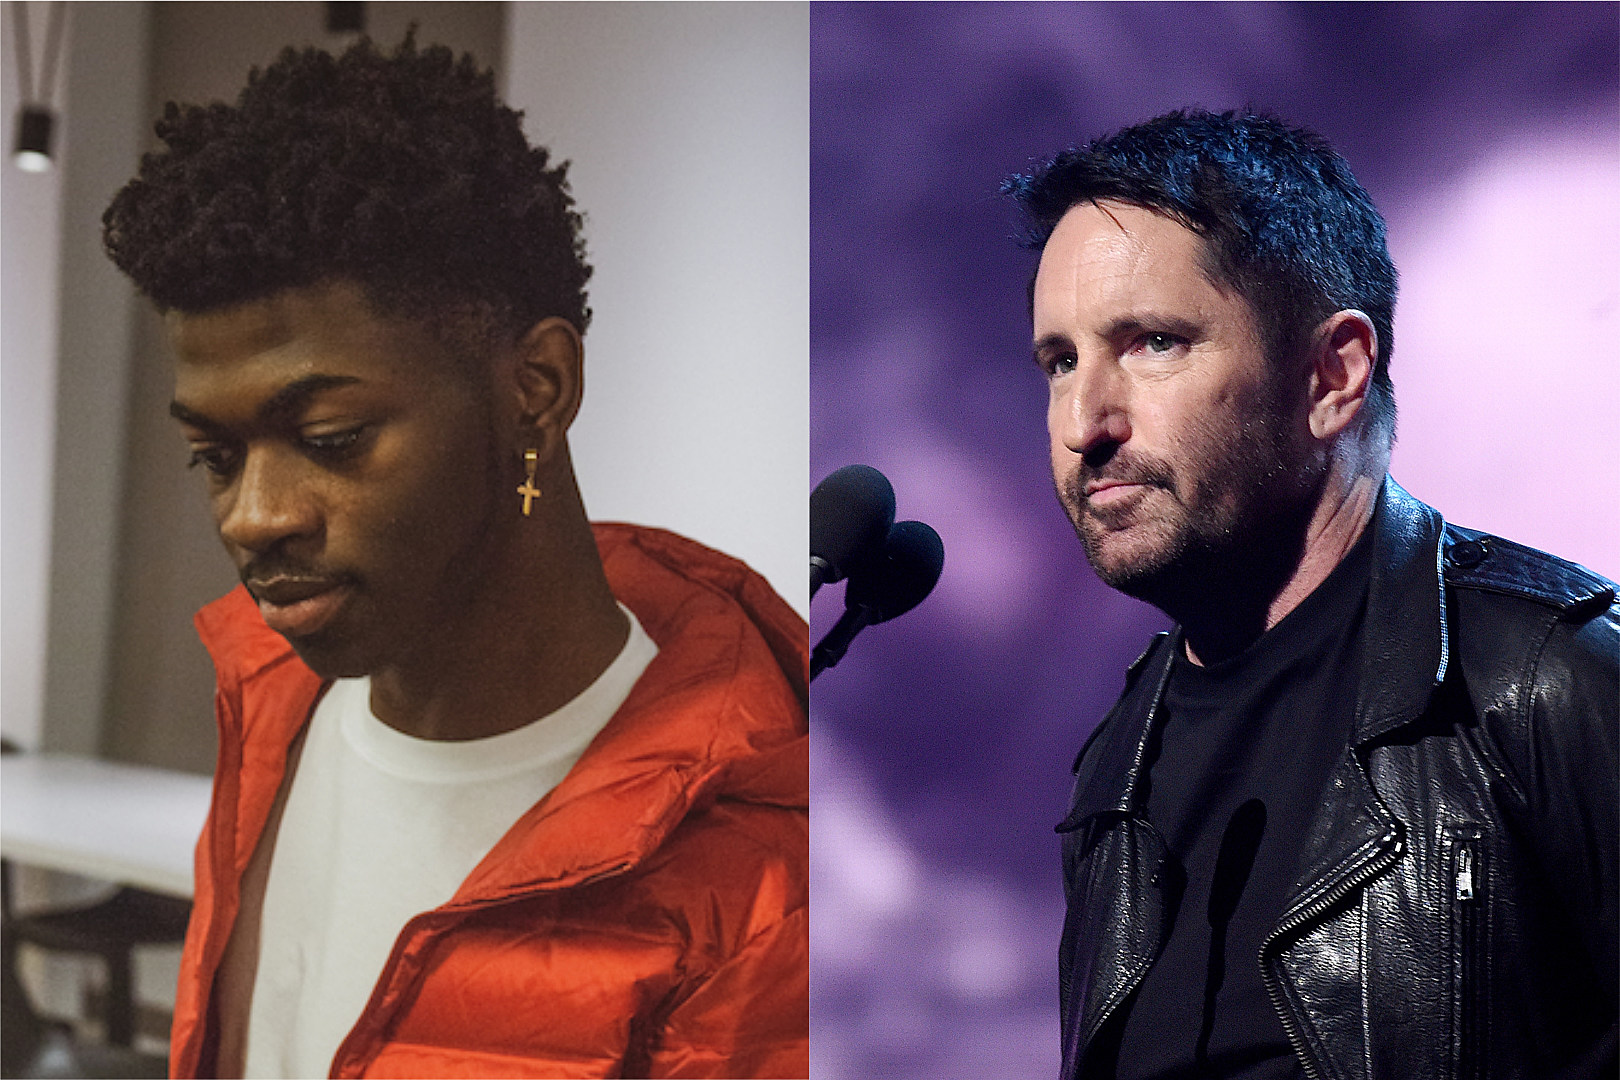 Did You Know a Nine Inch Nails Song Spawned 'Old Town Road'?